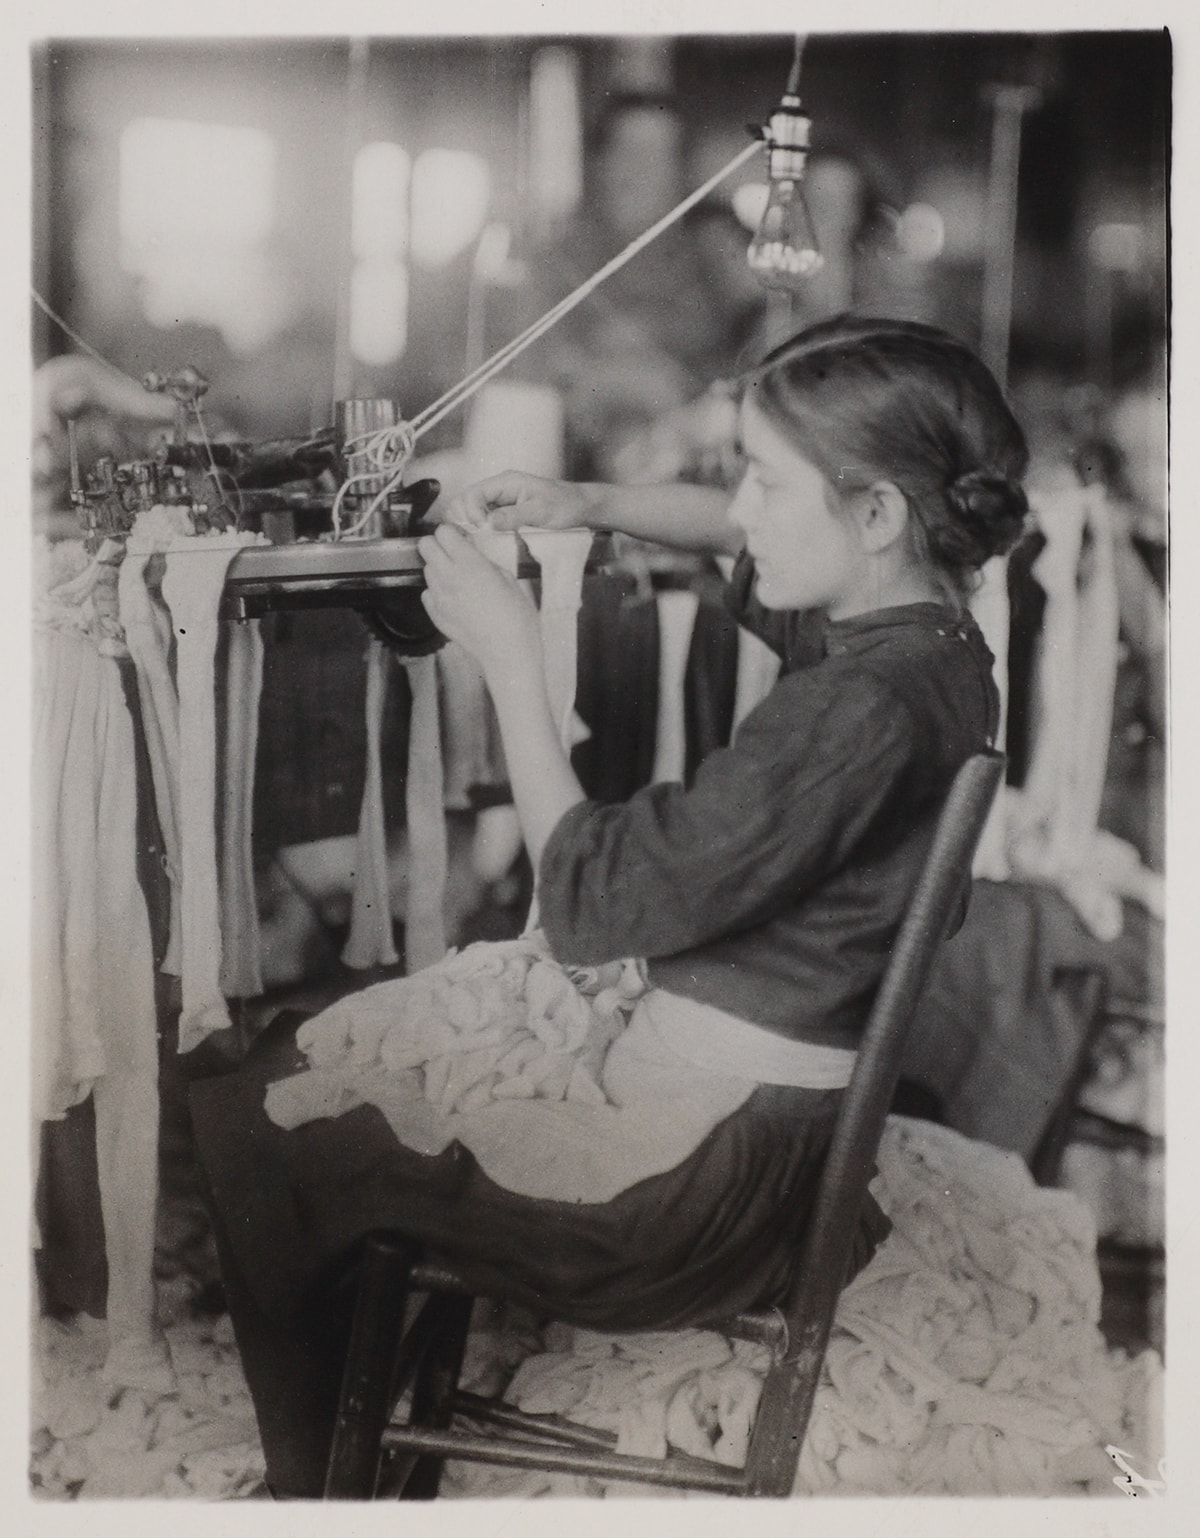 Image description: Lewis Hine, Making Stockings, gelatin silver print, 4 1/2 x 31/2 in. Vertical rectangular black-and-white photo of a young girl in profile sitting on a wood chair slightly tilted back that faces left, her hands and quiet concentration focused on a factory machine with stockings draped from it. She wears a dark dress, light apron, her hair appears to be in a low bun, and her lap is full of stockings which spill over to the floor and create a heap to her right. The background is out of focus and suggests disorderly conditions.